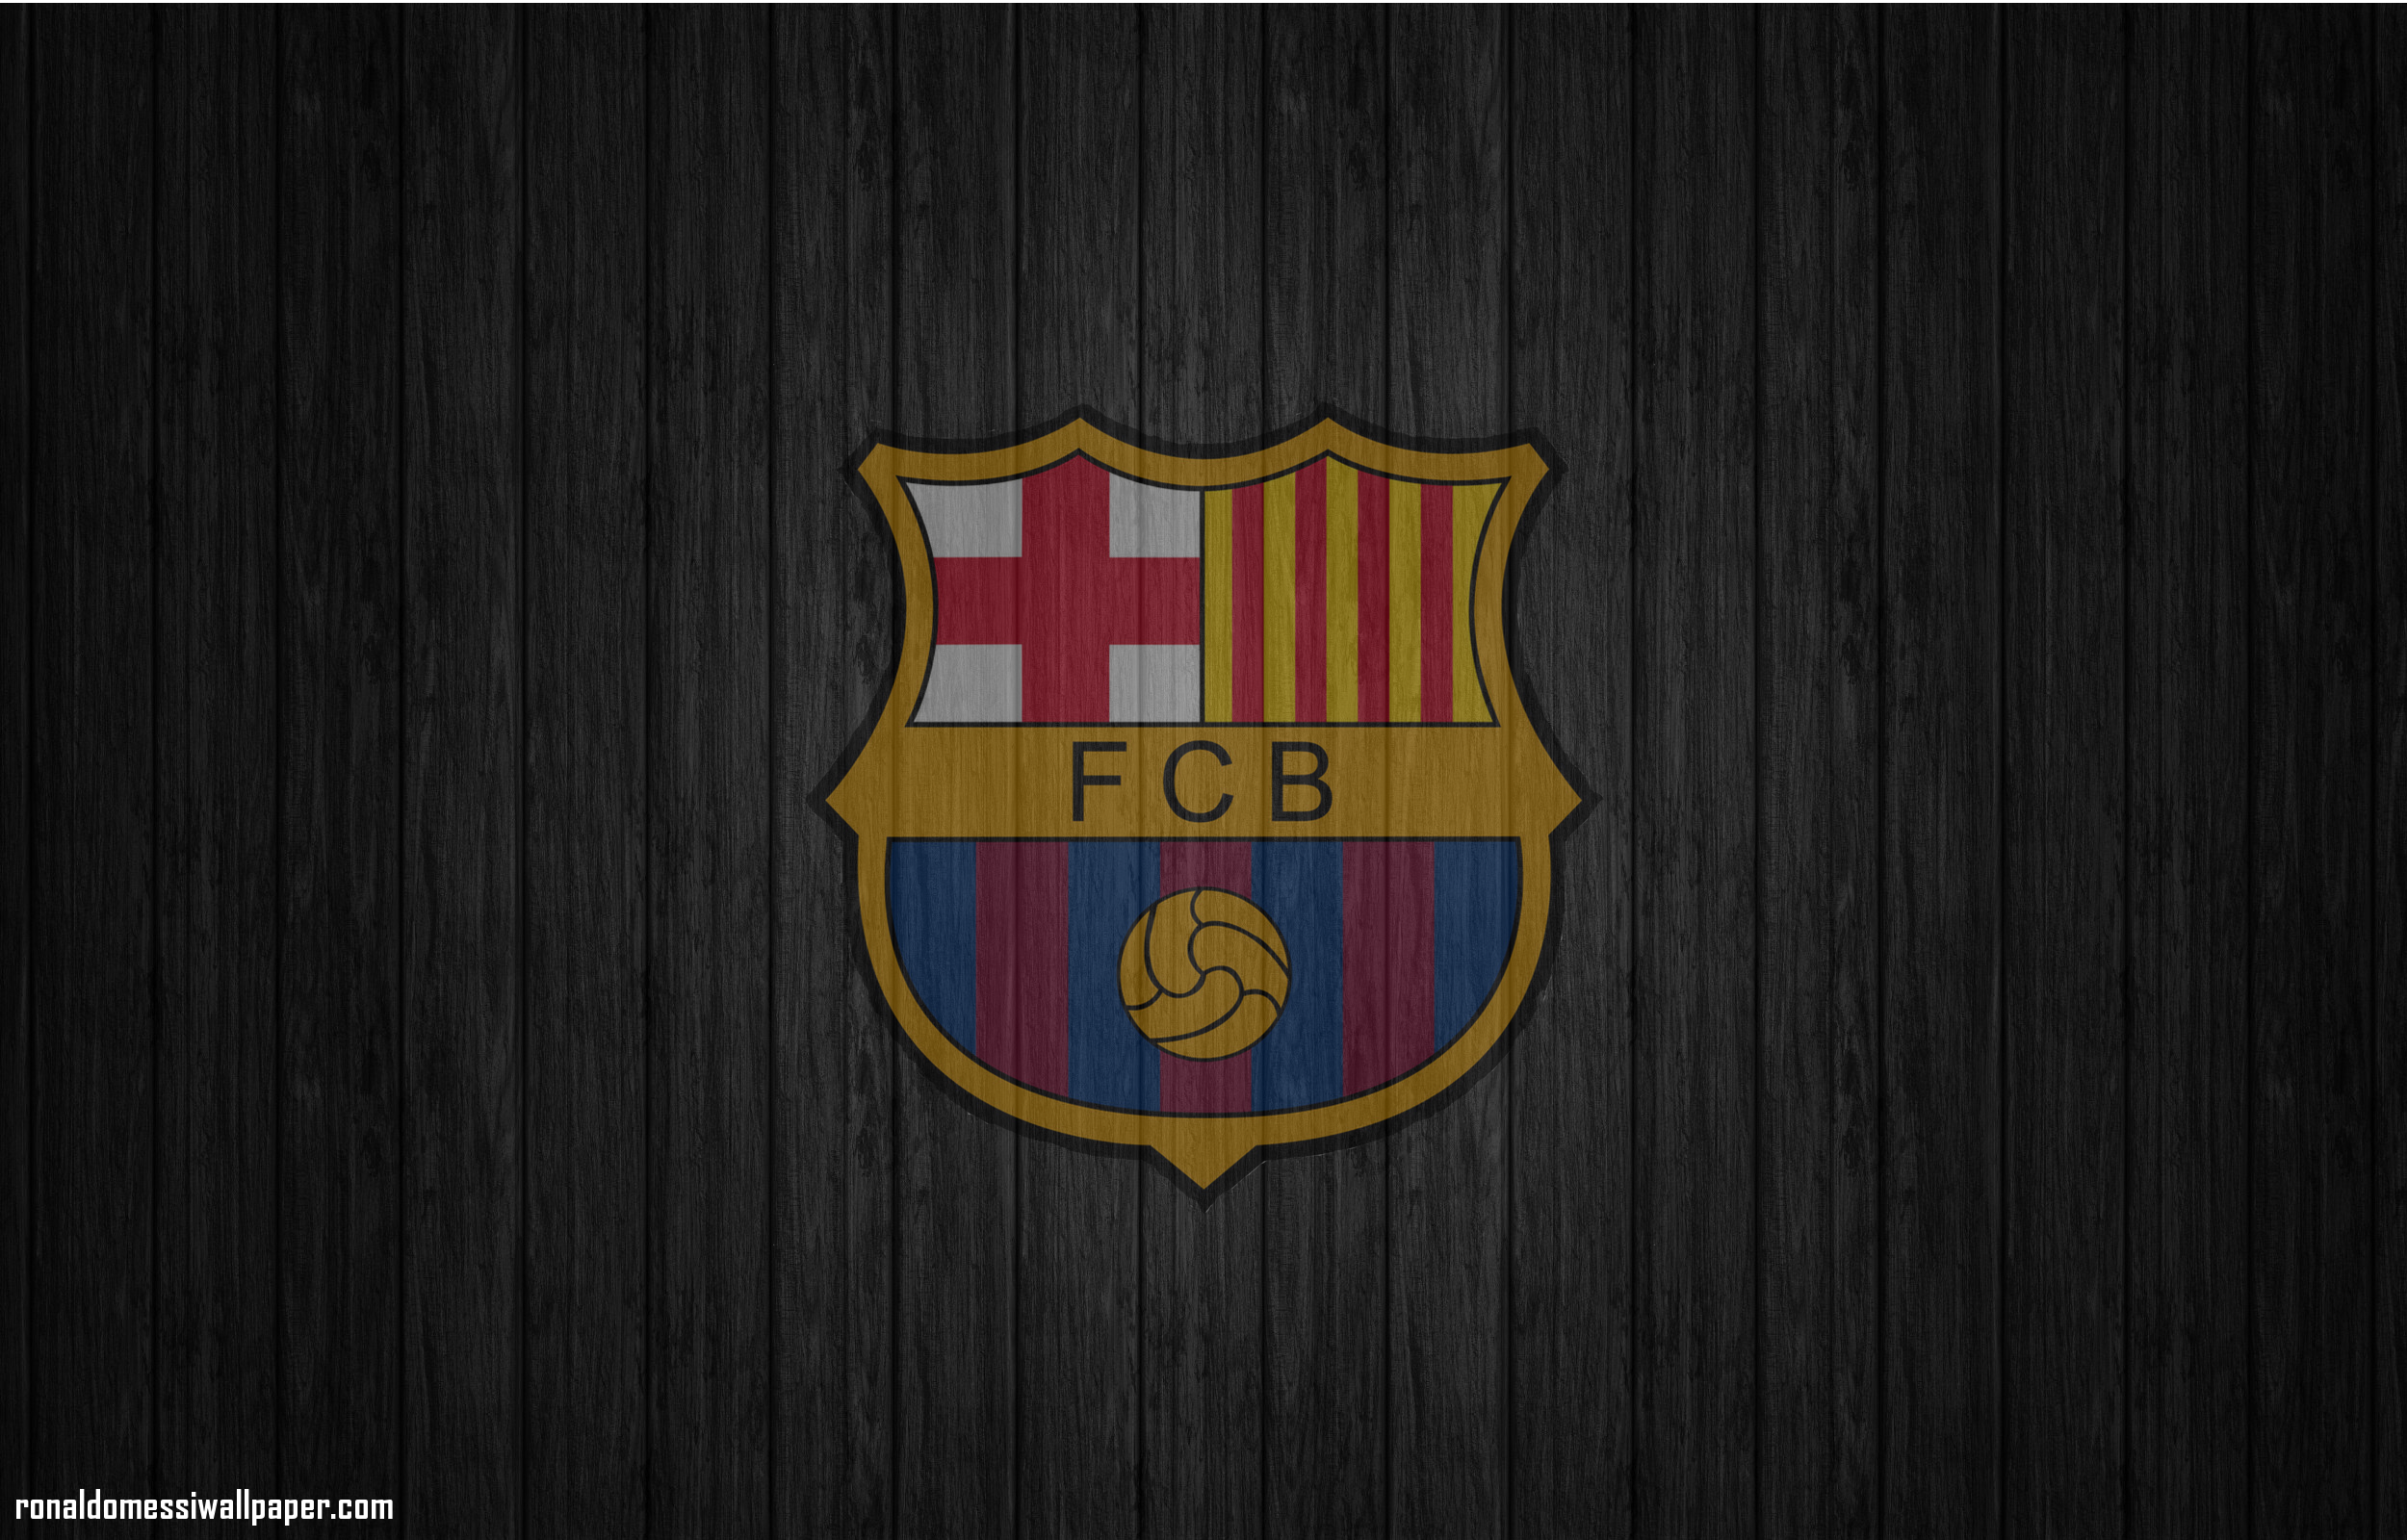 . PlusPng.com Fc Barcelona Wallpapers Fc Barcelona High Quality Vh795 Mobile;  Barcelona Phone Wallpaper Wallpaper Hd; Fcb PlusPng.com  - Fcb HD PNG